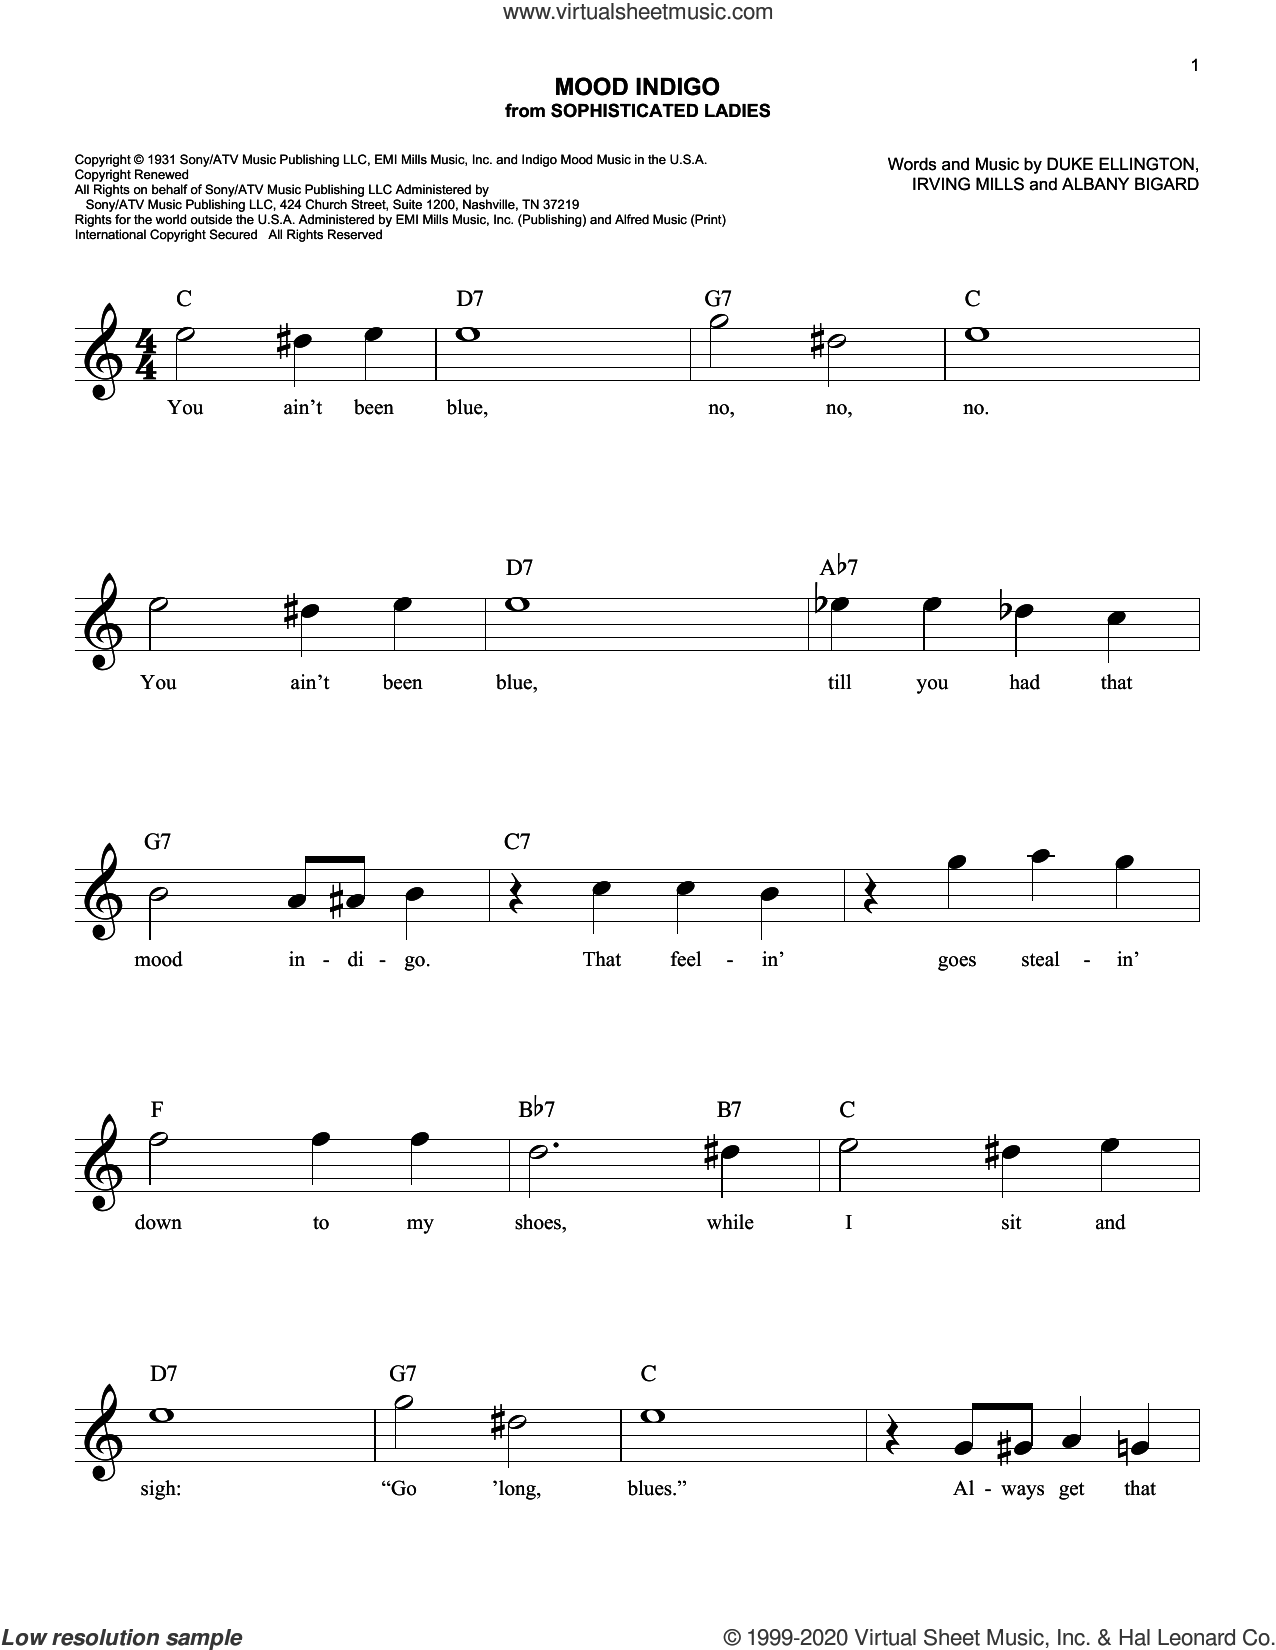 Mood Indigo sheet music for voice and other instruments (fake book) by Duke Ellington, Albany Bigard and Irving Mills, intermediate skill level